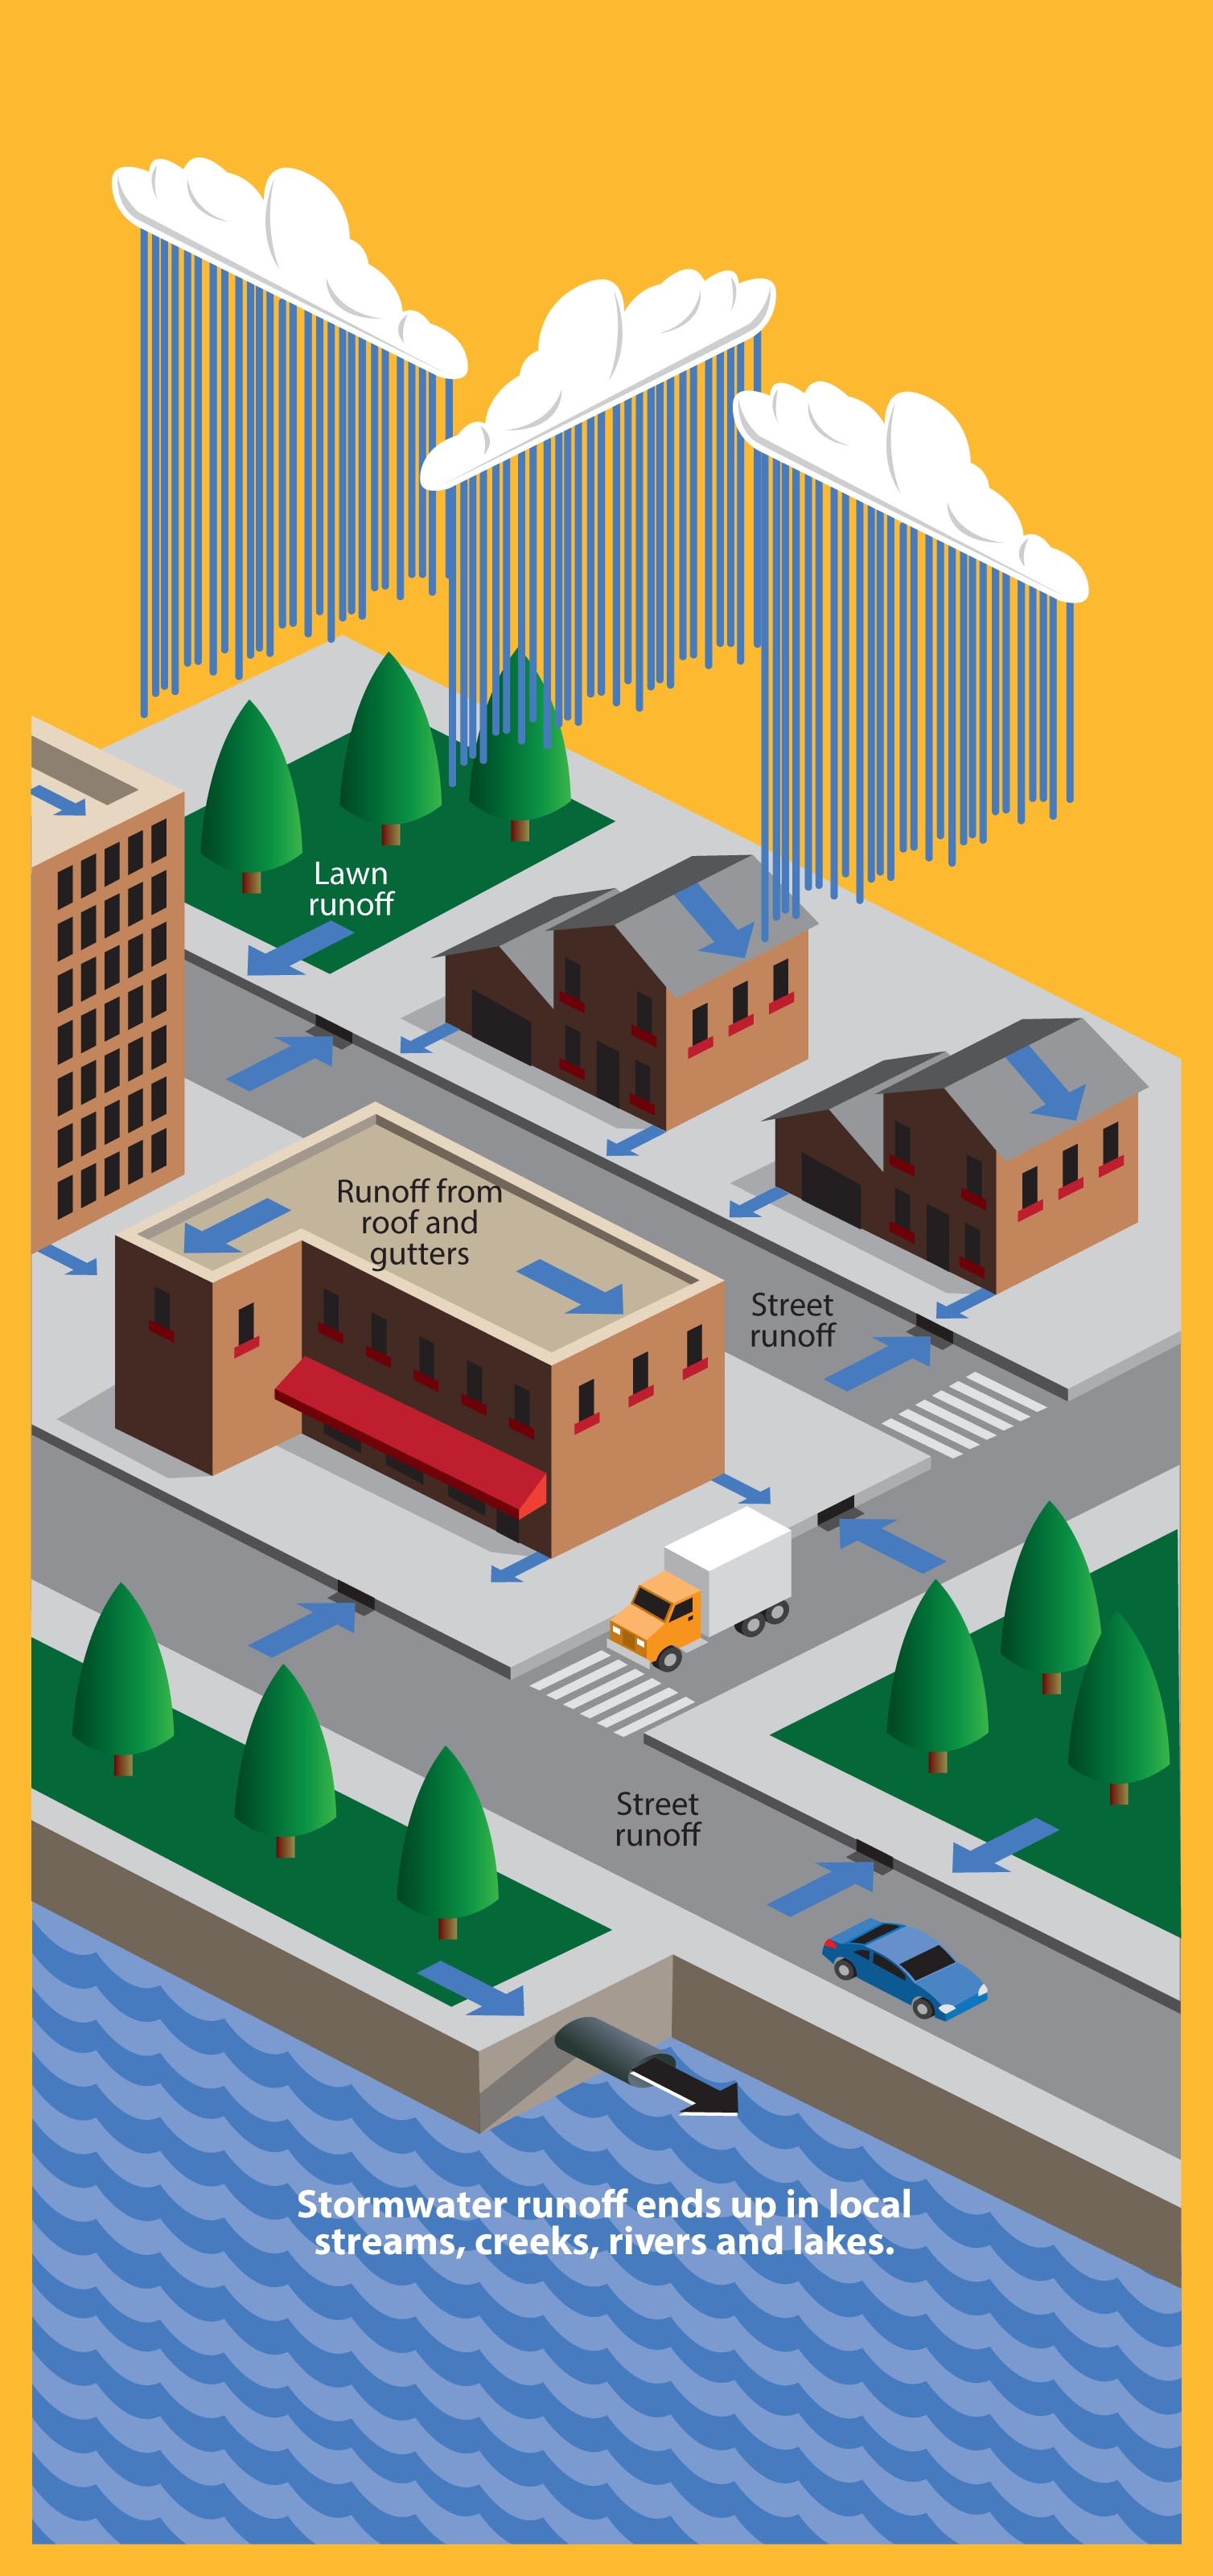 Stormwater Illustration: Courtesy of Association of Washington Cities